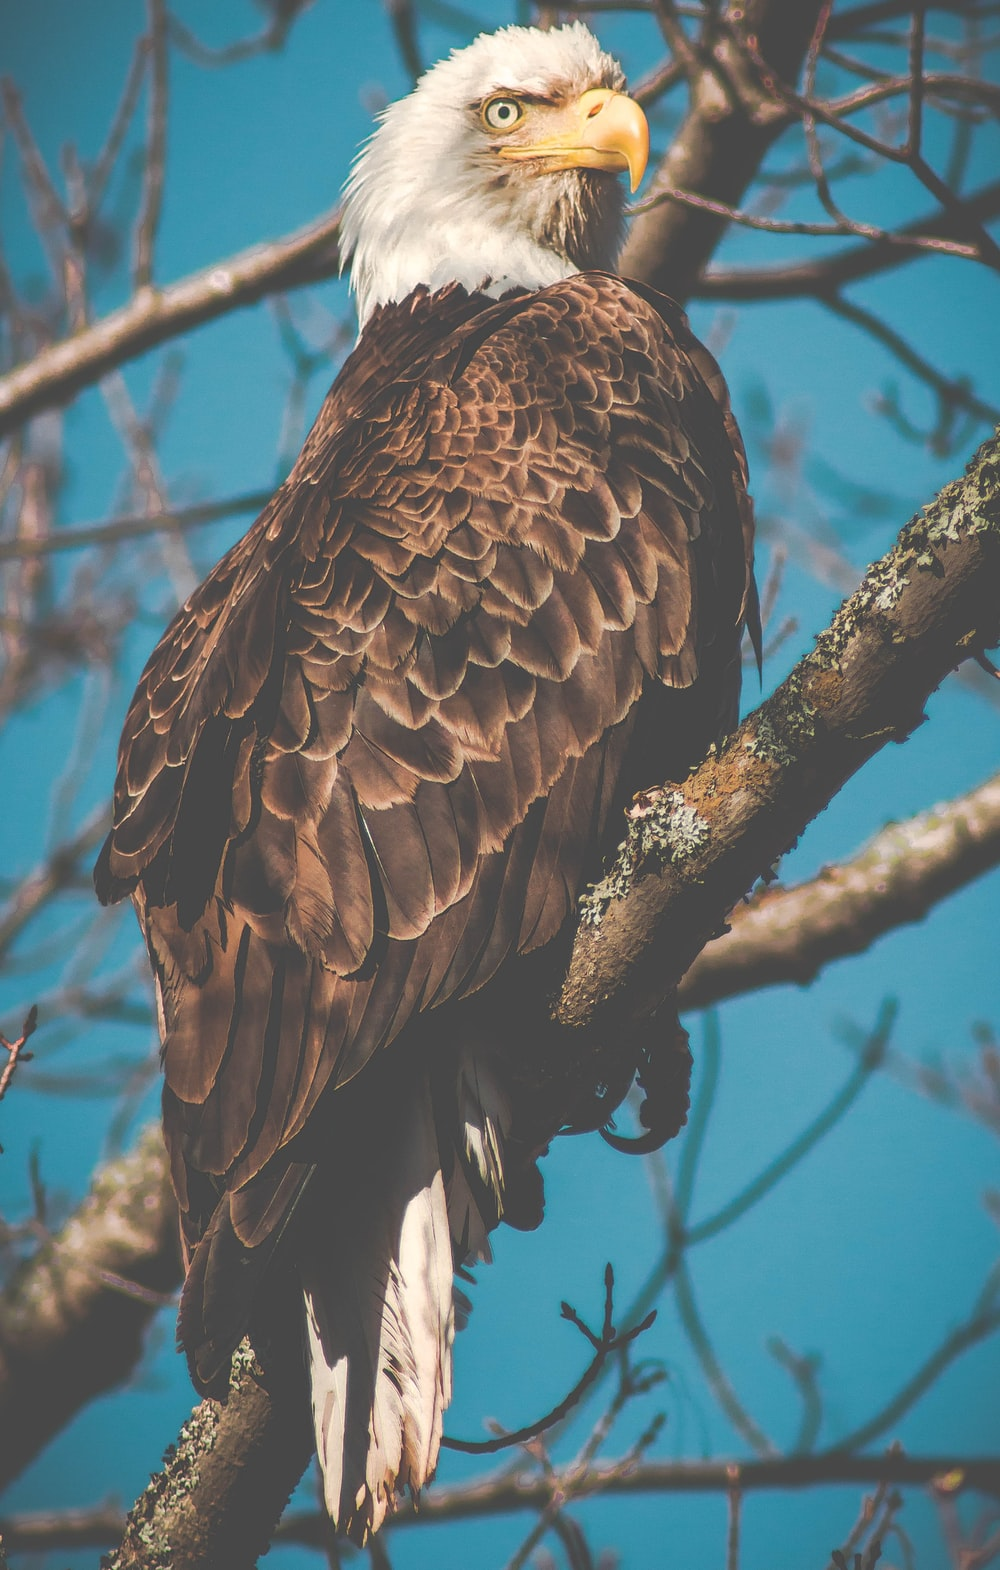 American eagle on branch photo – Free Bird Image on Unsplash